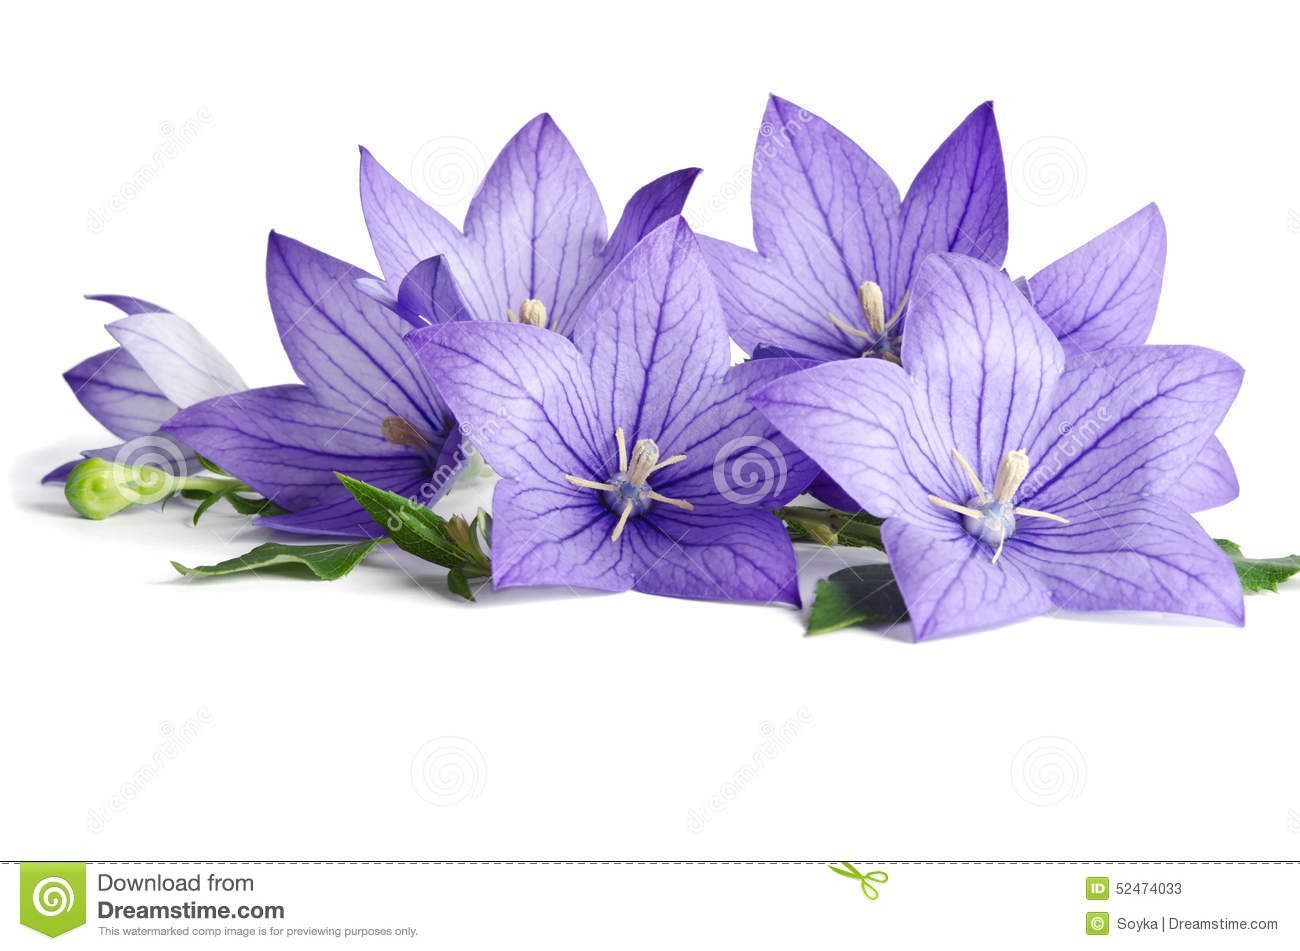 Blue bell flowers stock image image of beauty flowers 52474033 blue bell flowers mightylinksfo